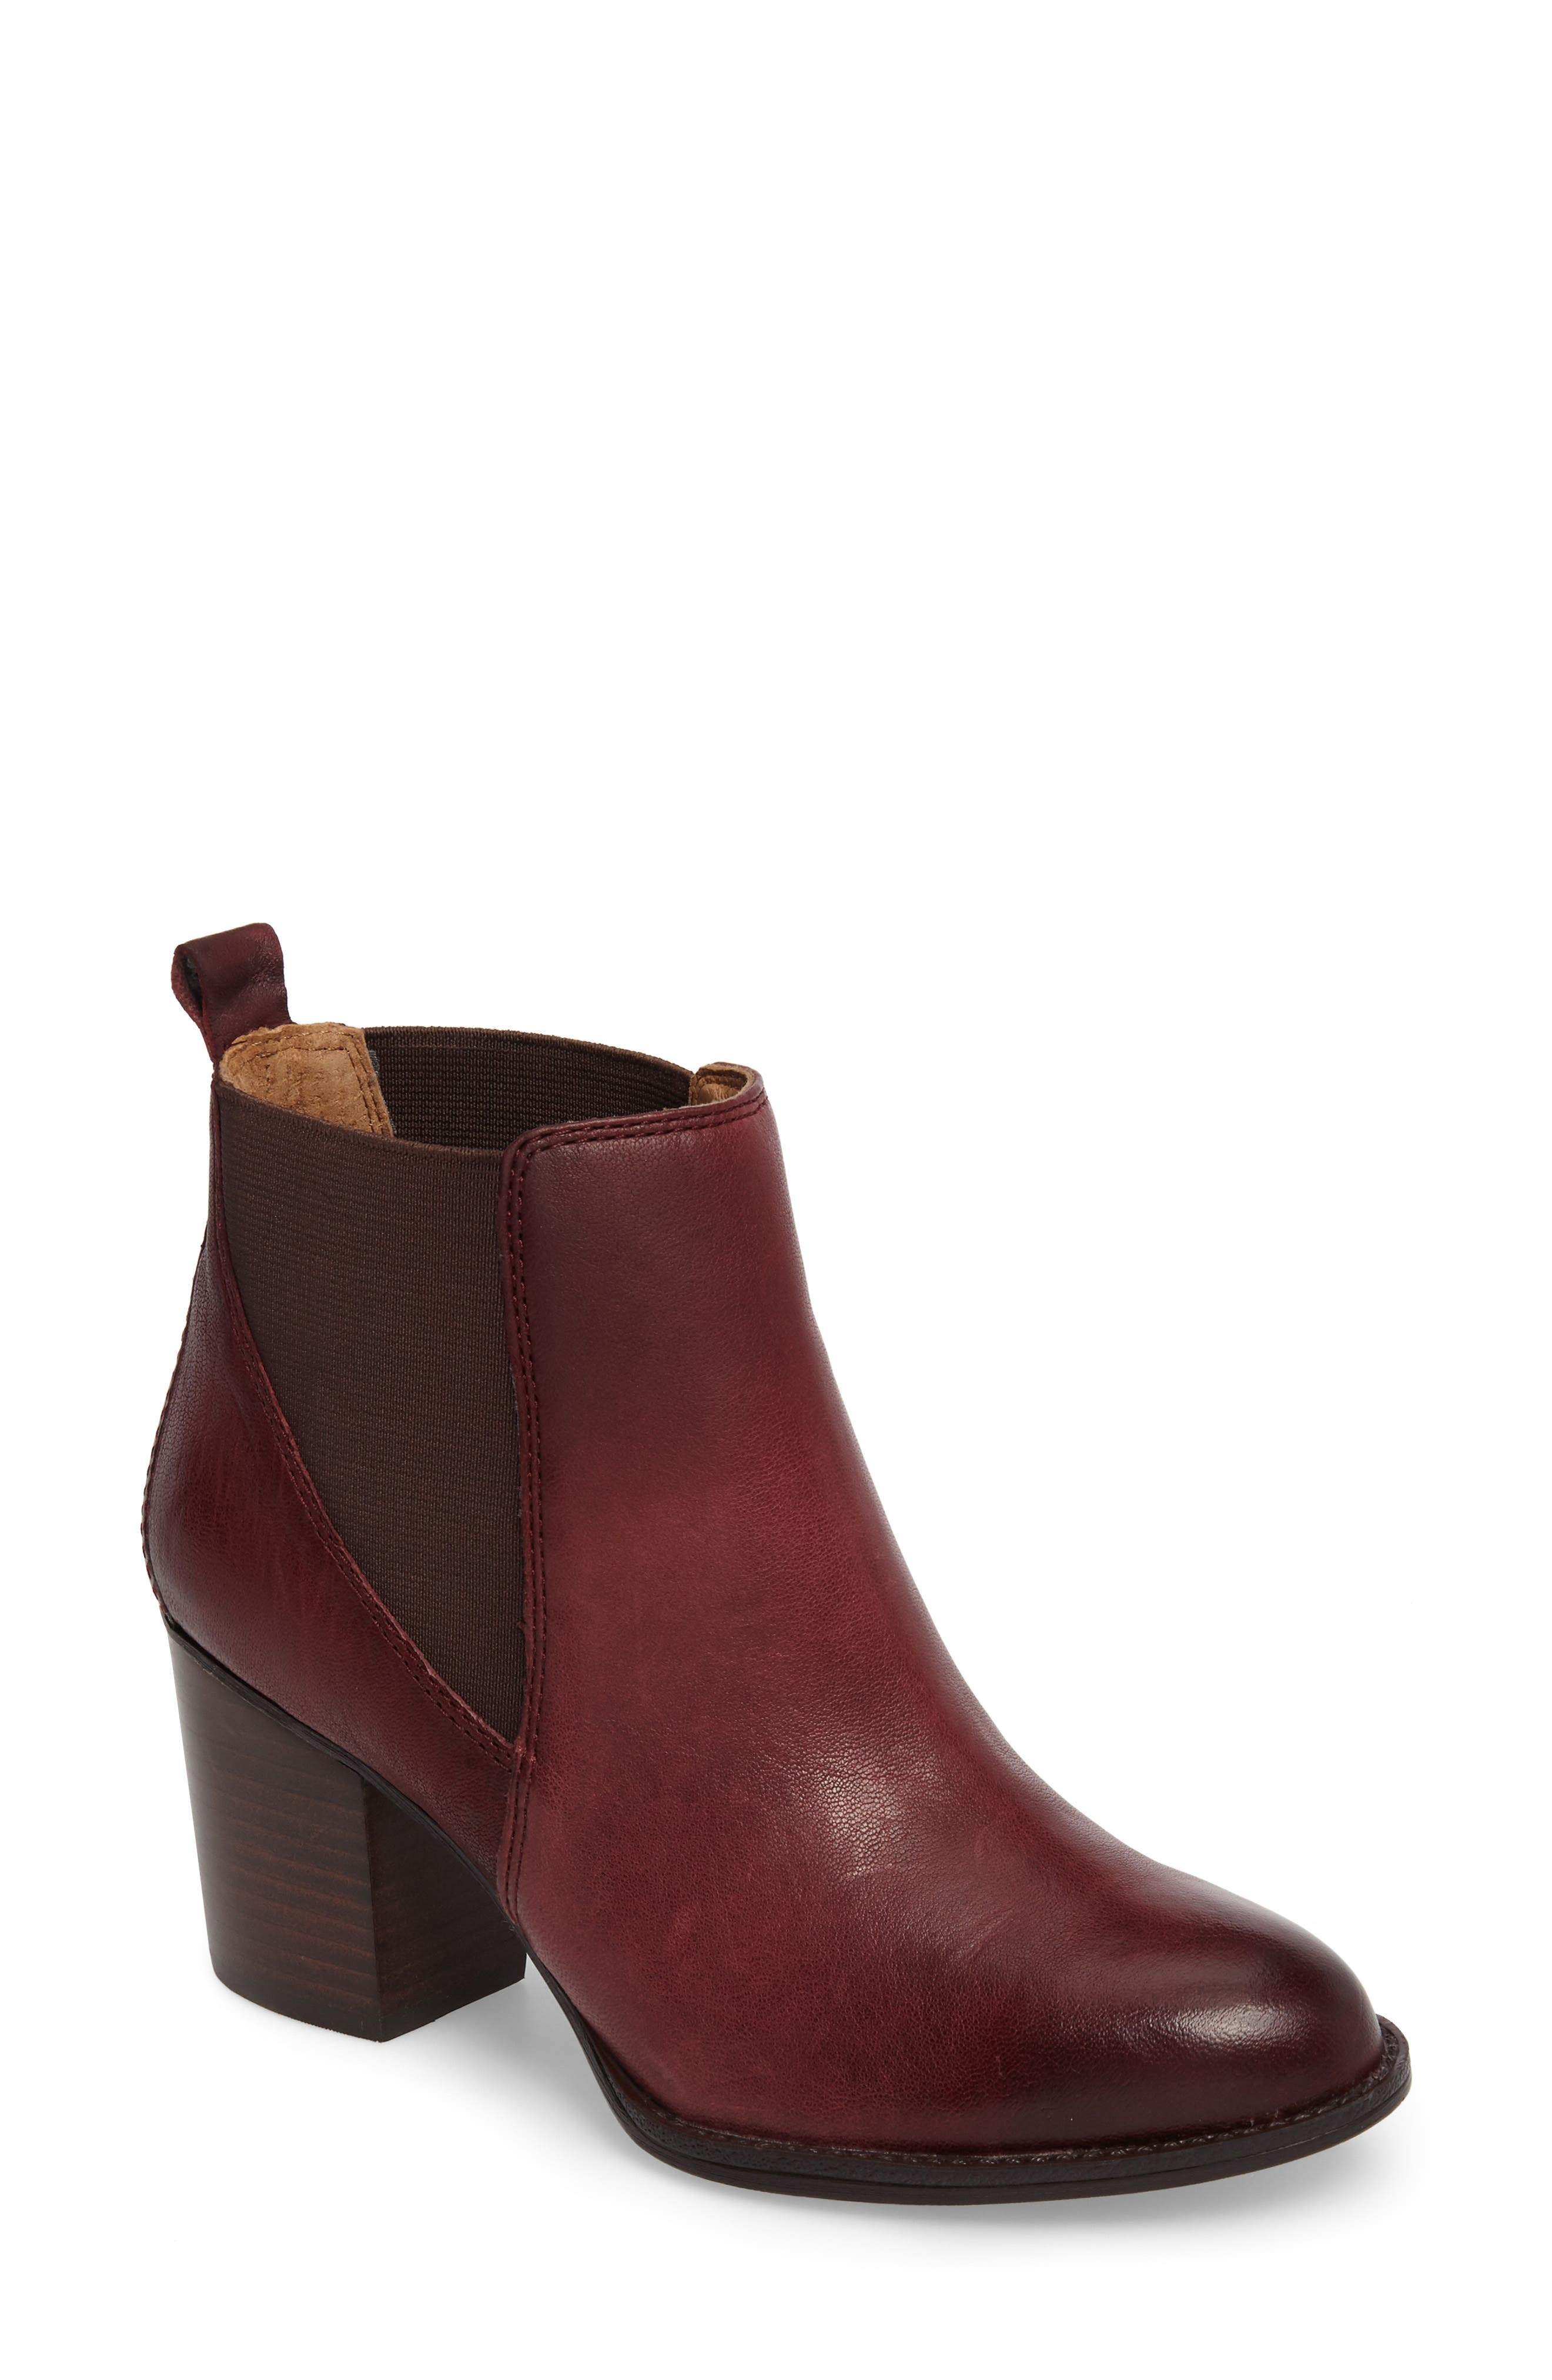 Welling Bootie,                         Main,                         color, WINE RED LEATHER